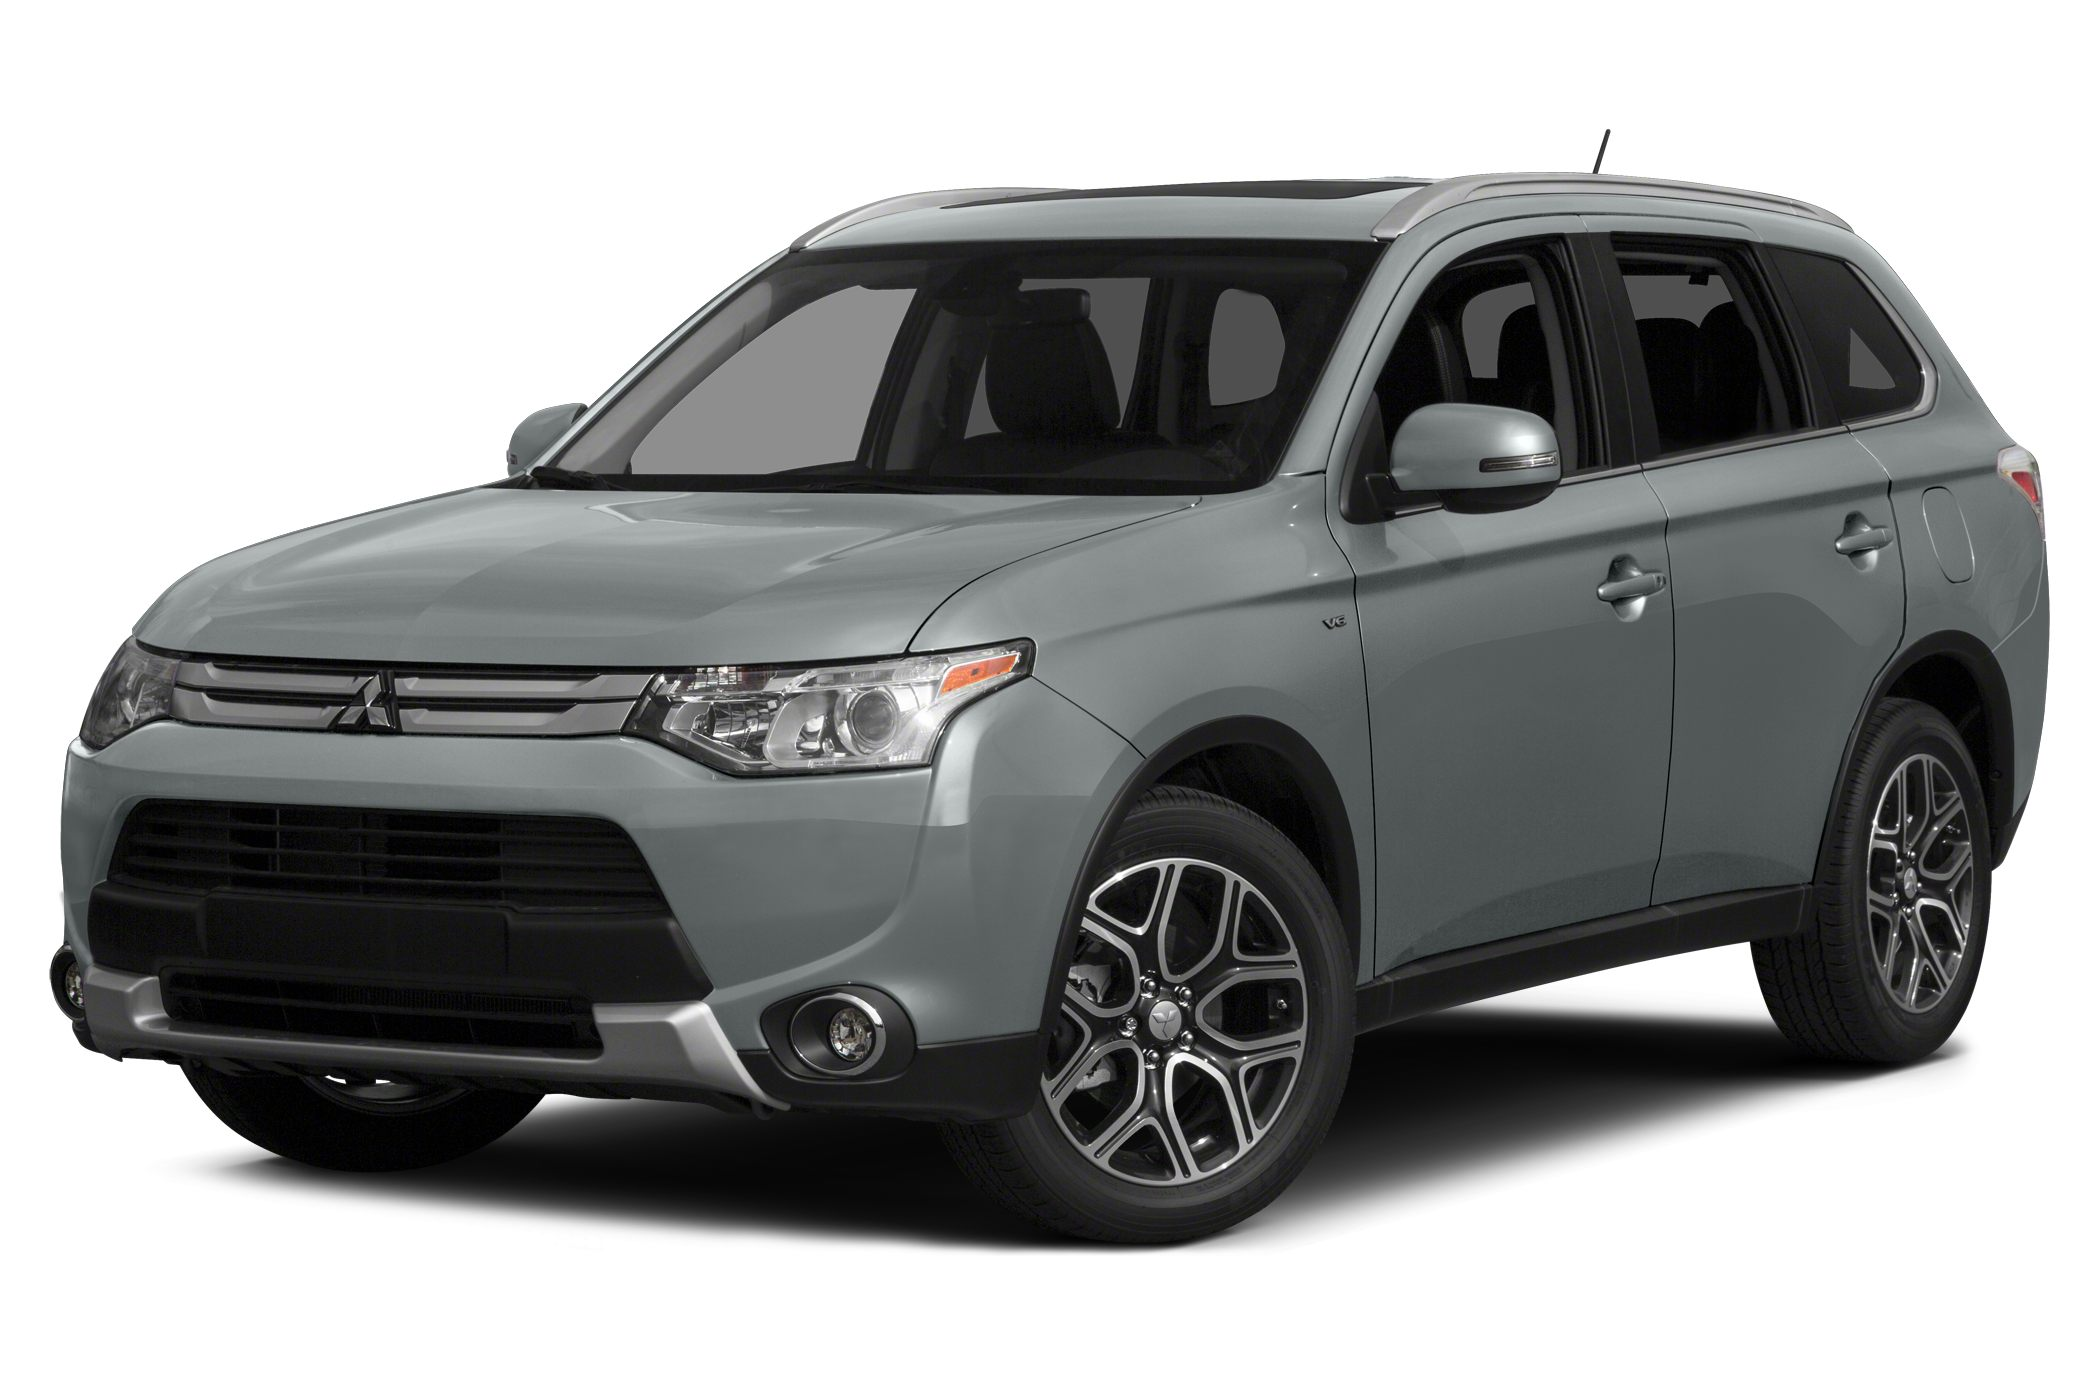 2015 Mitsubishi Outlander SE SUV for sale in Middleburg Heights for $25,157 with 12 miles